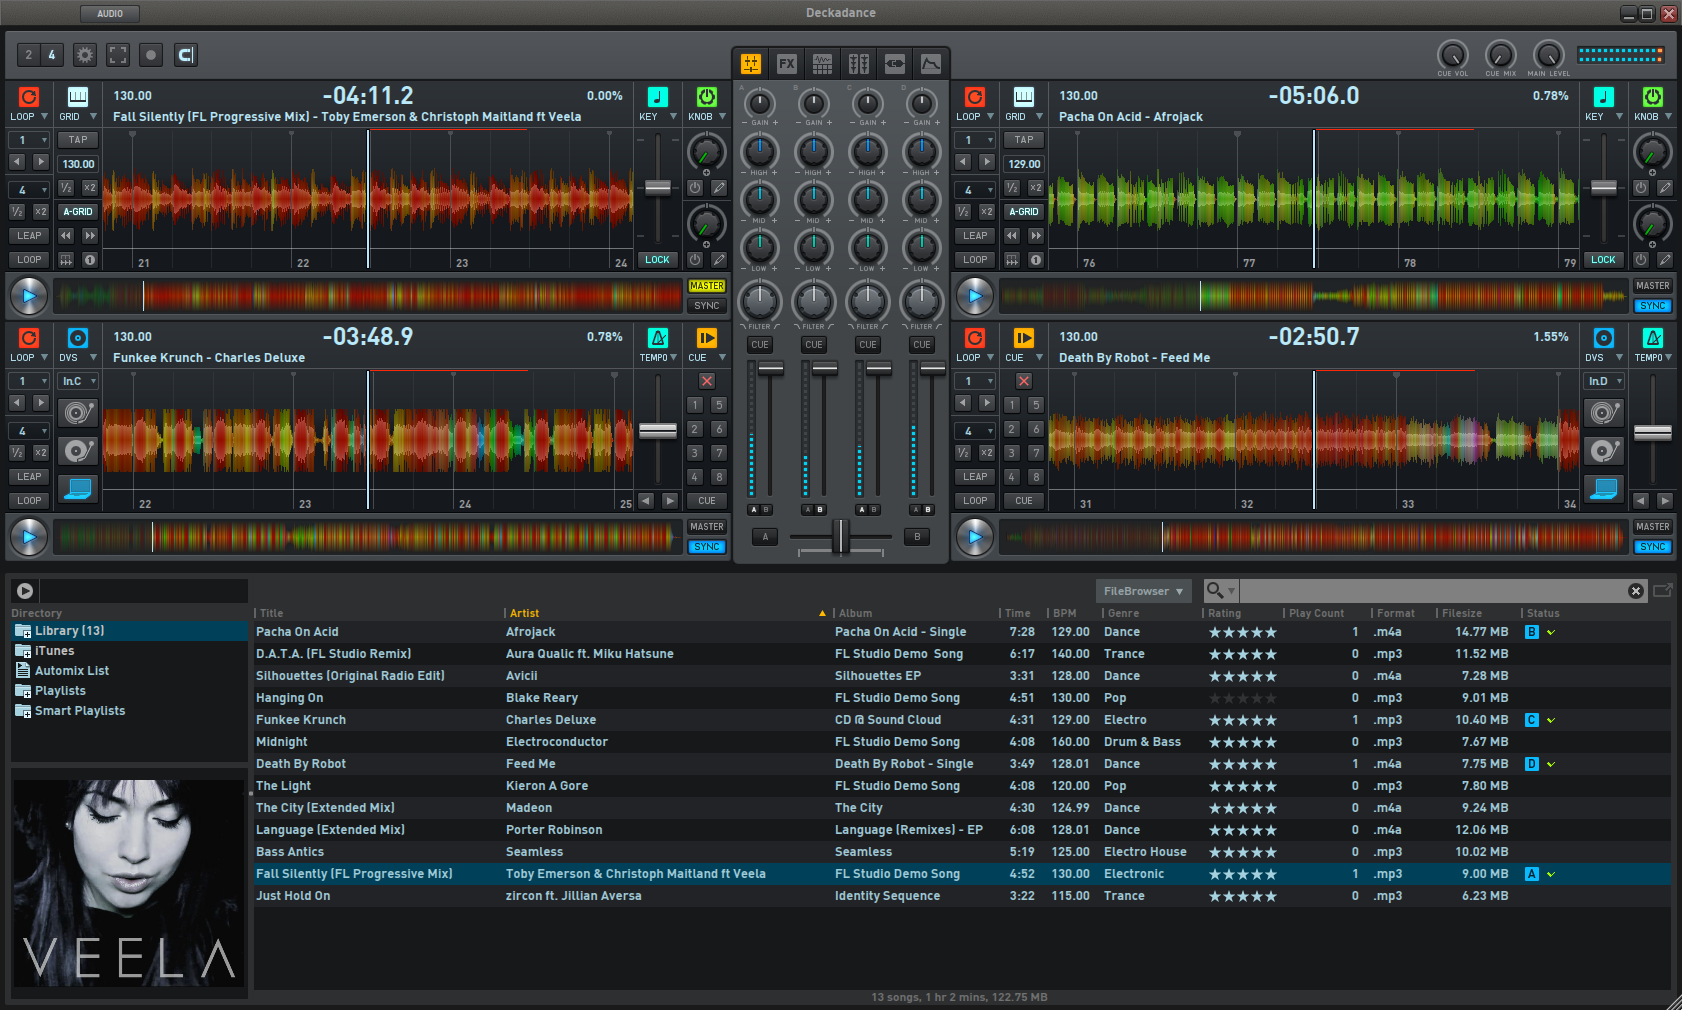 They're not much worse than most Traktor mappings for third party controllers